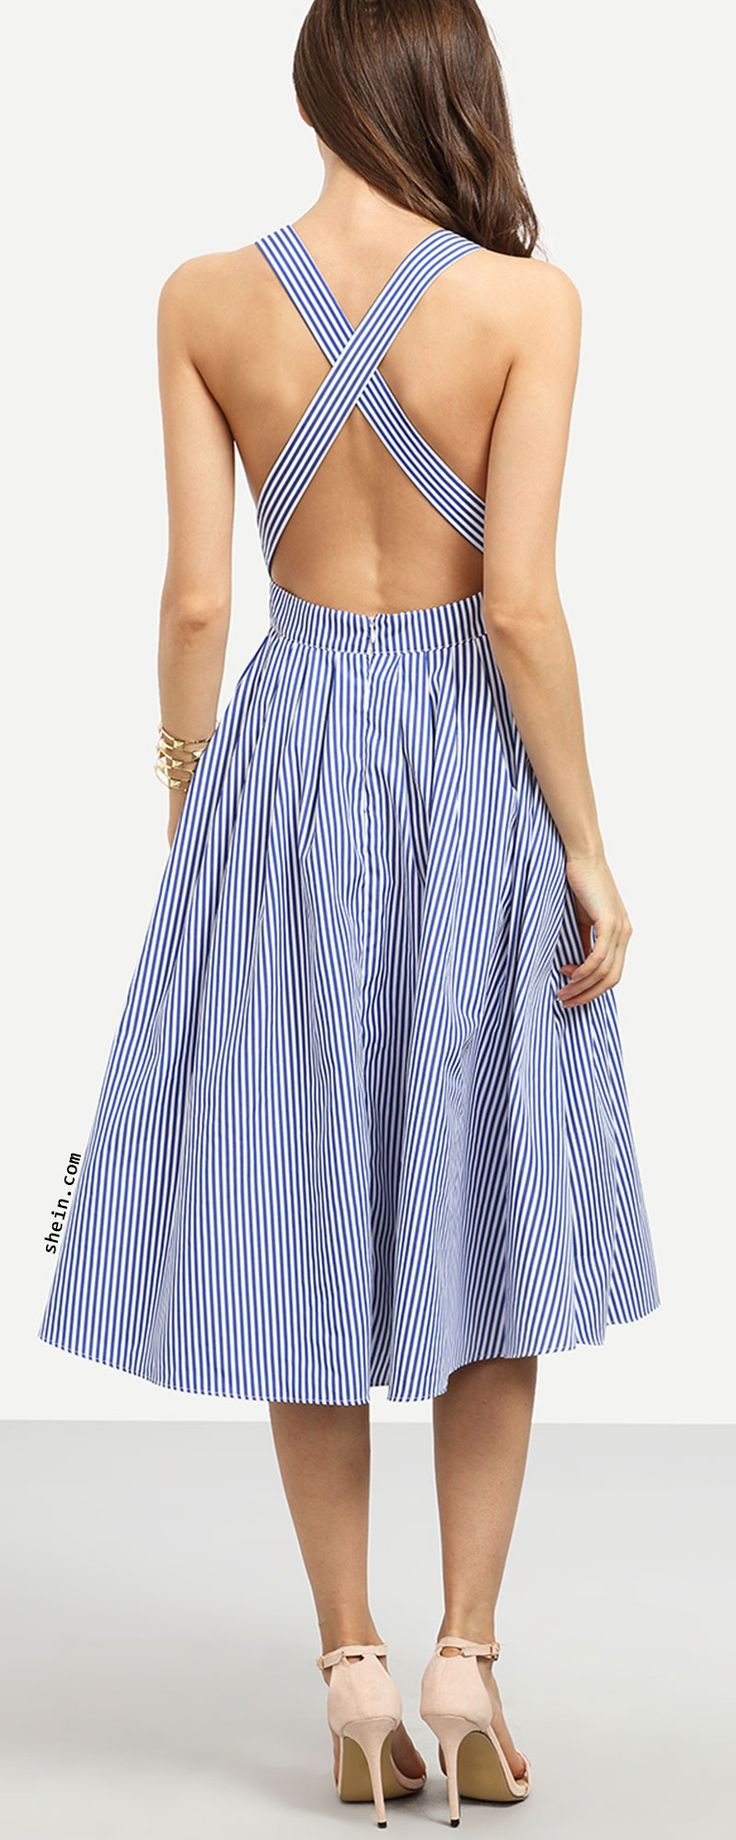 Blue Striped Sleeveless Criss Cross Back Dress